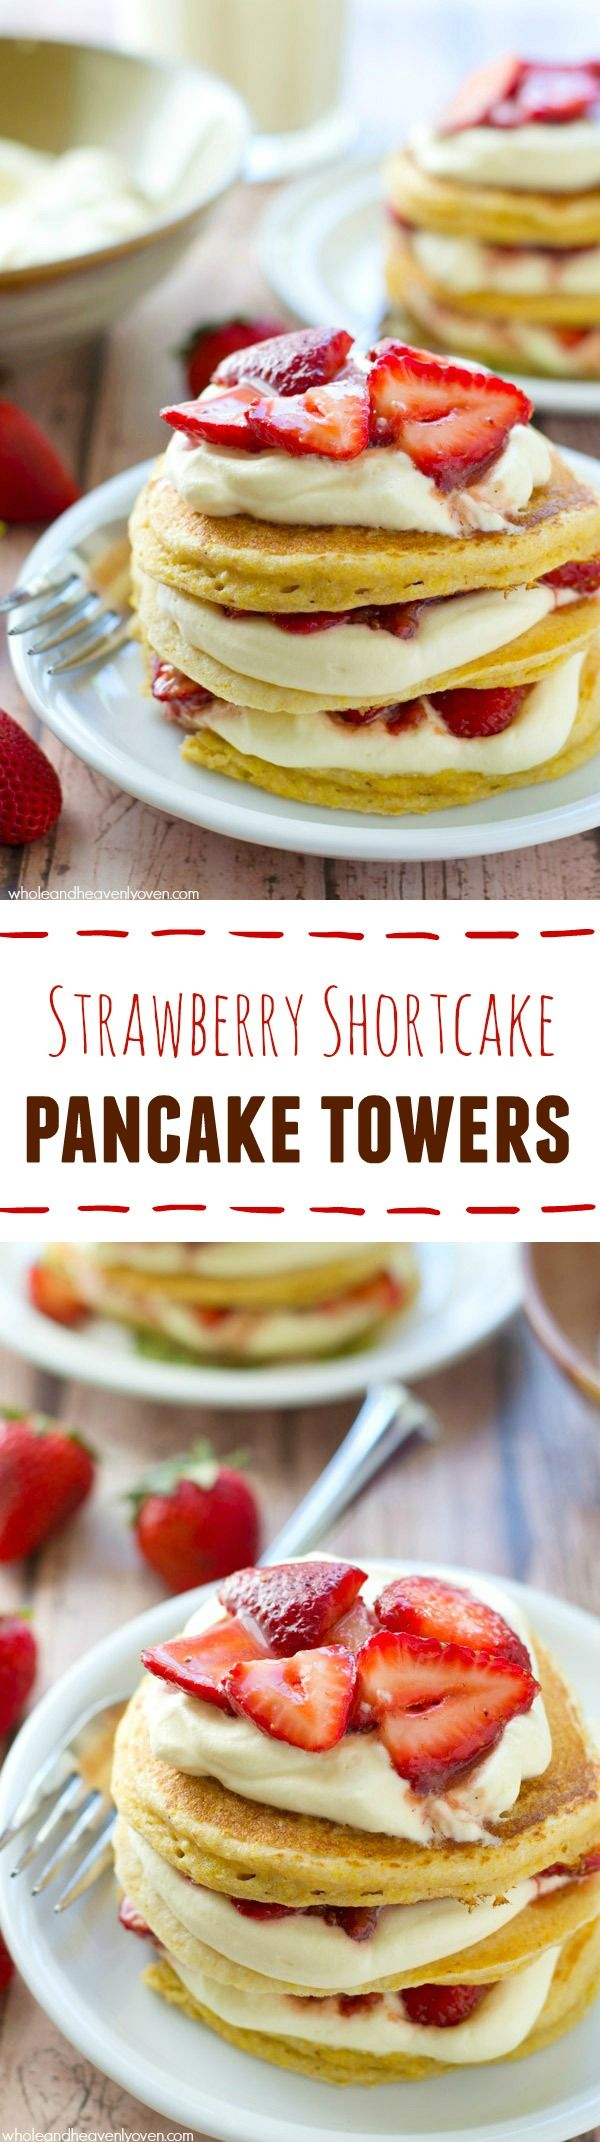 These layered pancake towers combine all the things you love about strawberry shortcake into one showstopping weekend breakfast that's guaranteed to wow brunch guests!